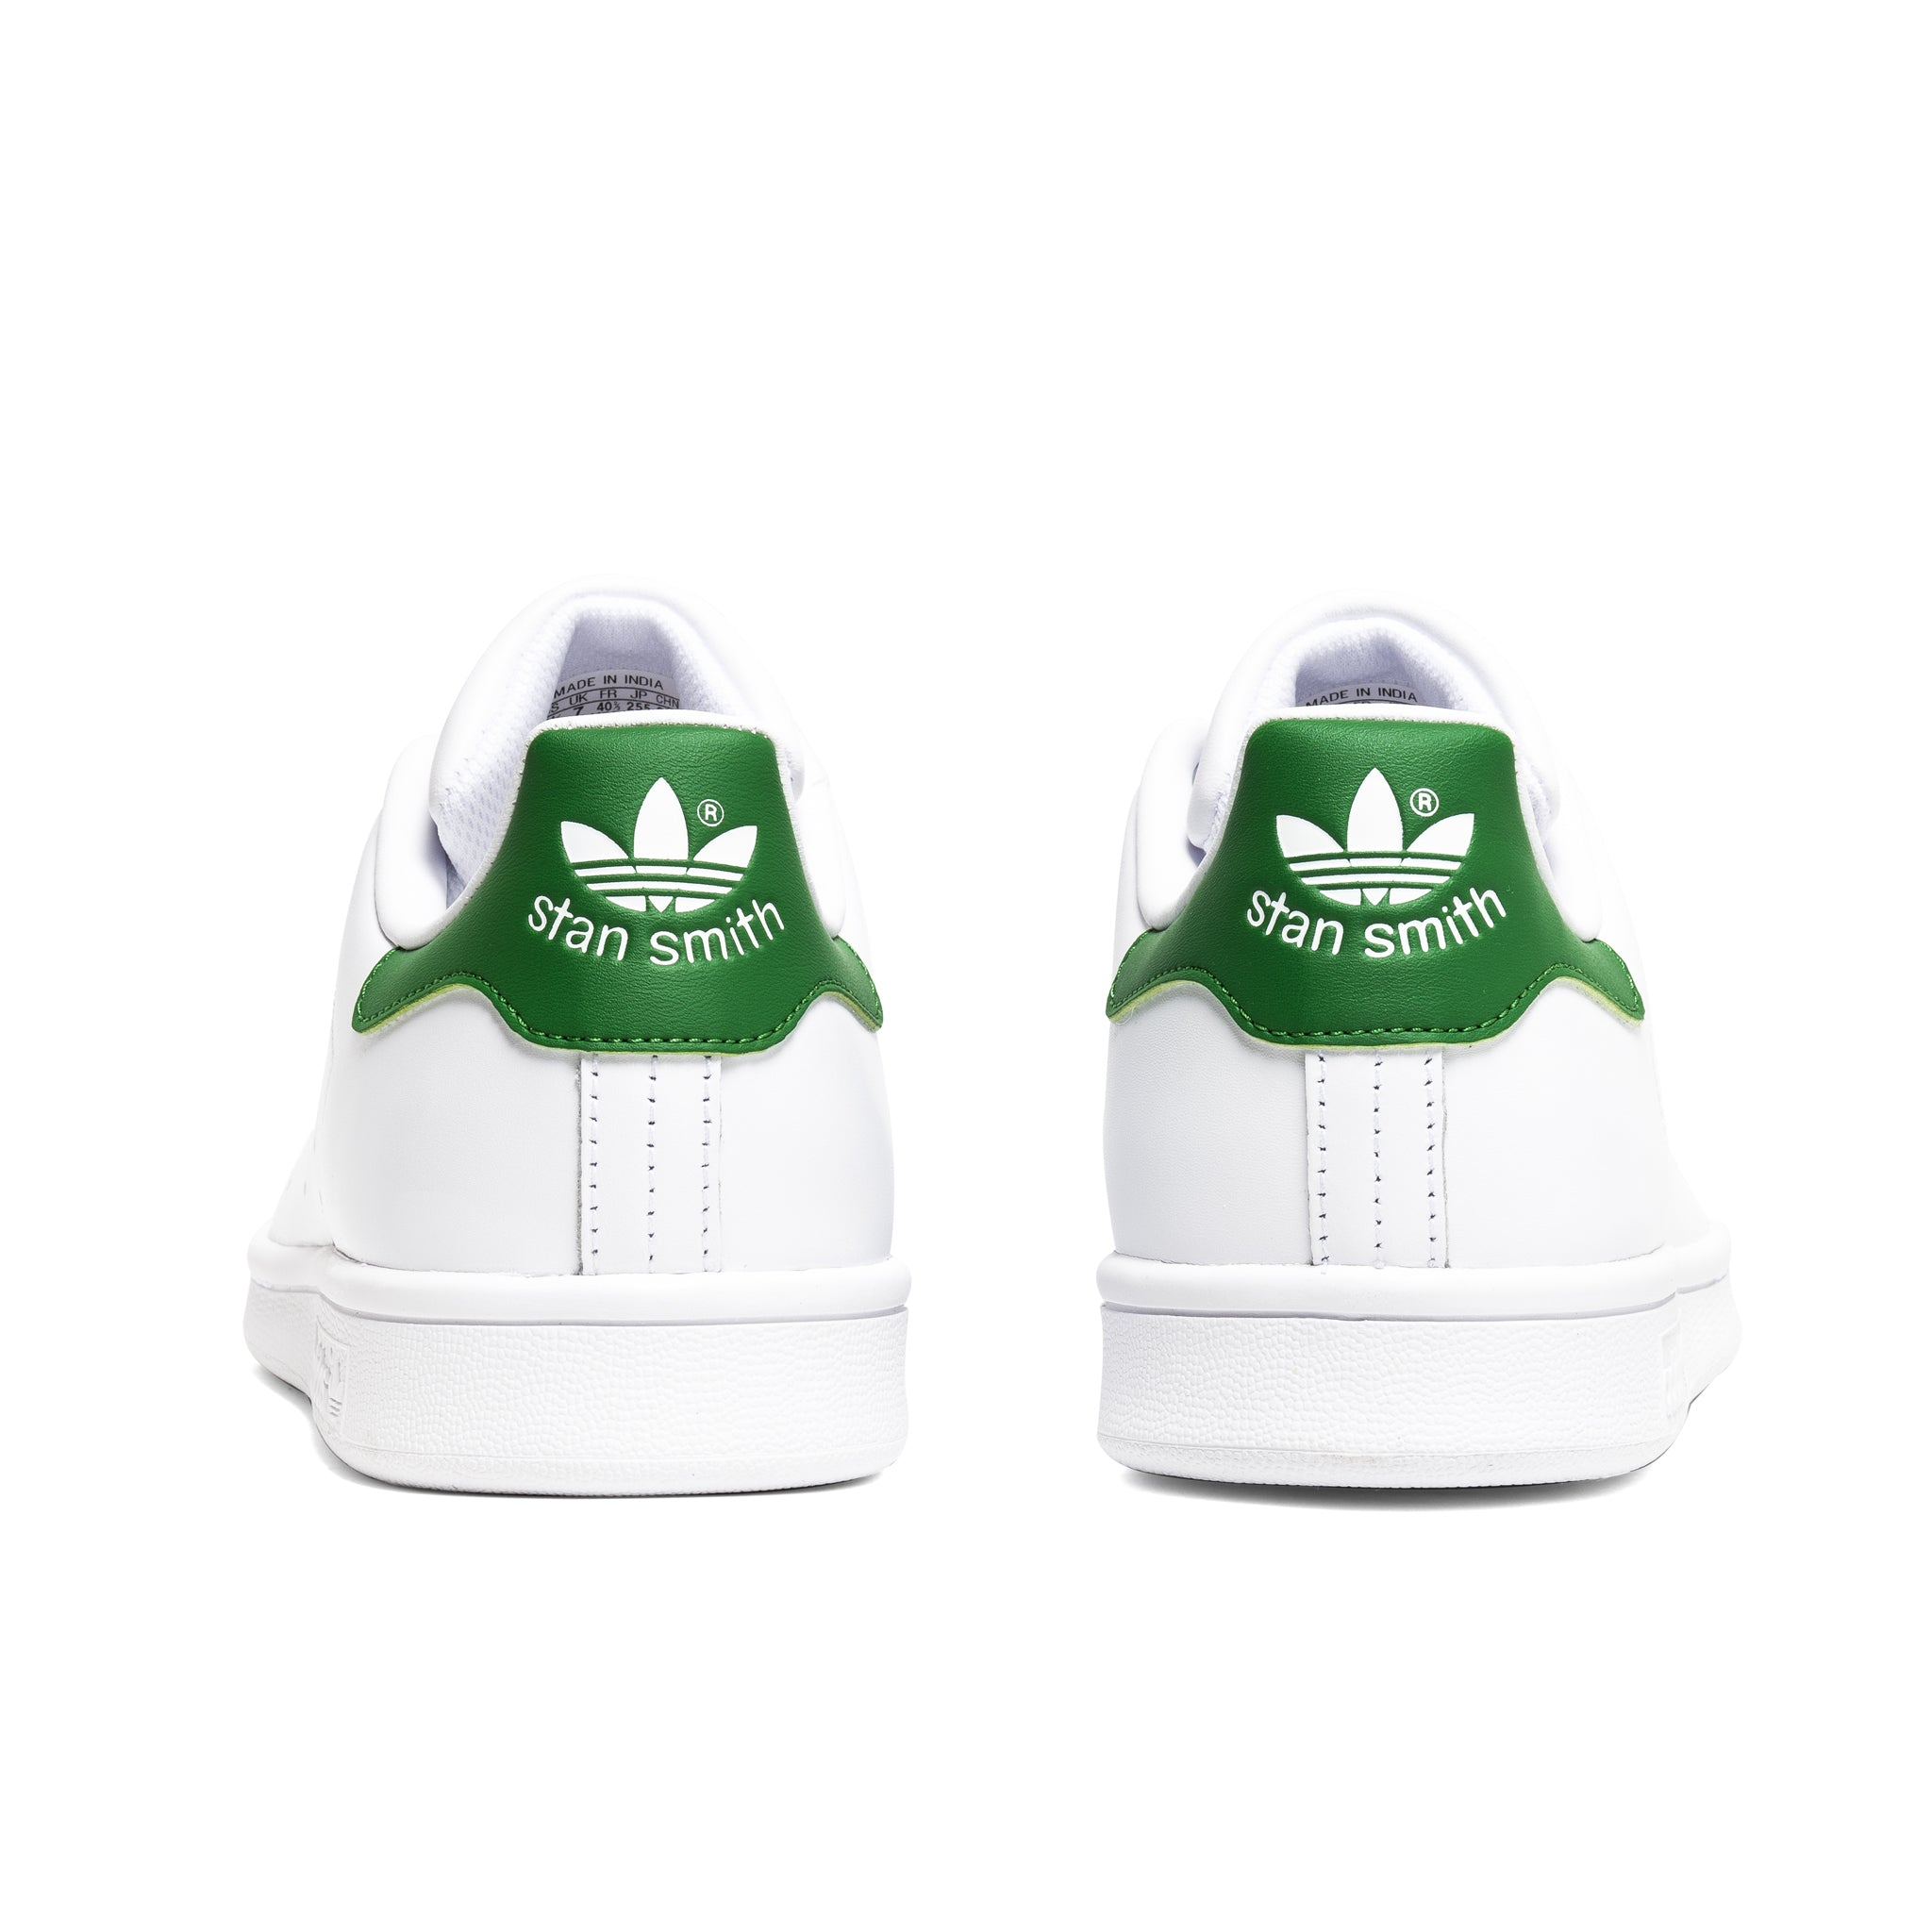 new style 1b6d7 68413 Women's adidas Stan Smith Green